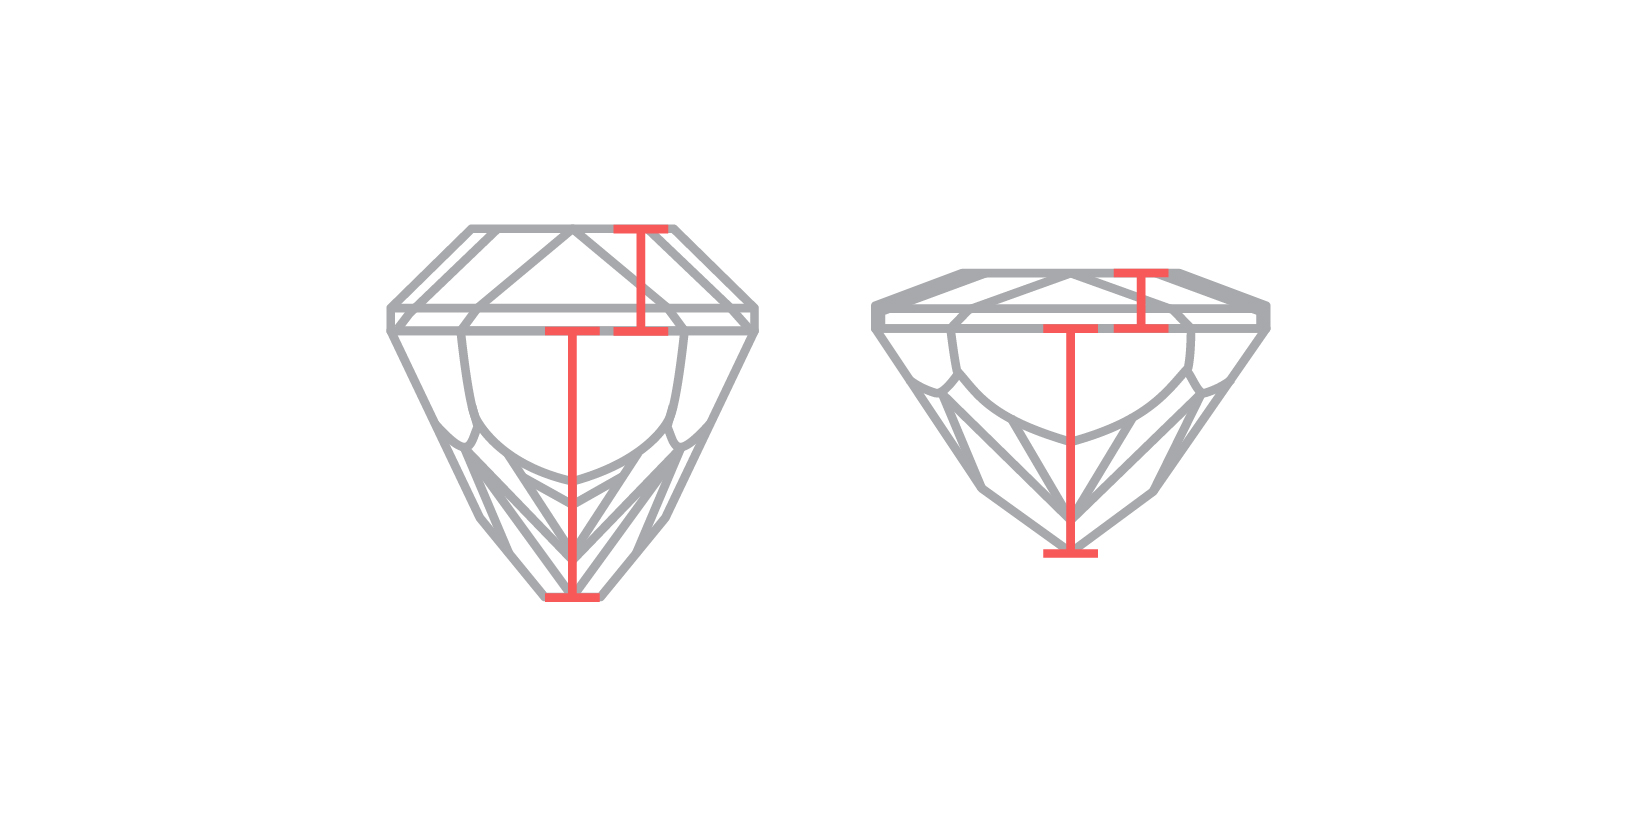 SIDE PROFILE - Higher crown and deeper pavilion in an old mine cut vs. a lower crown and more shallow pavilion in the modern cushion cut